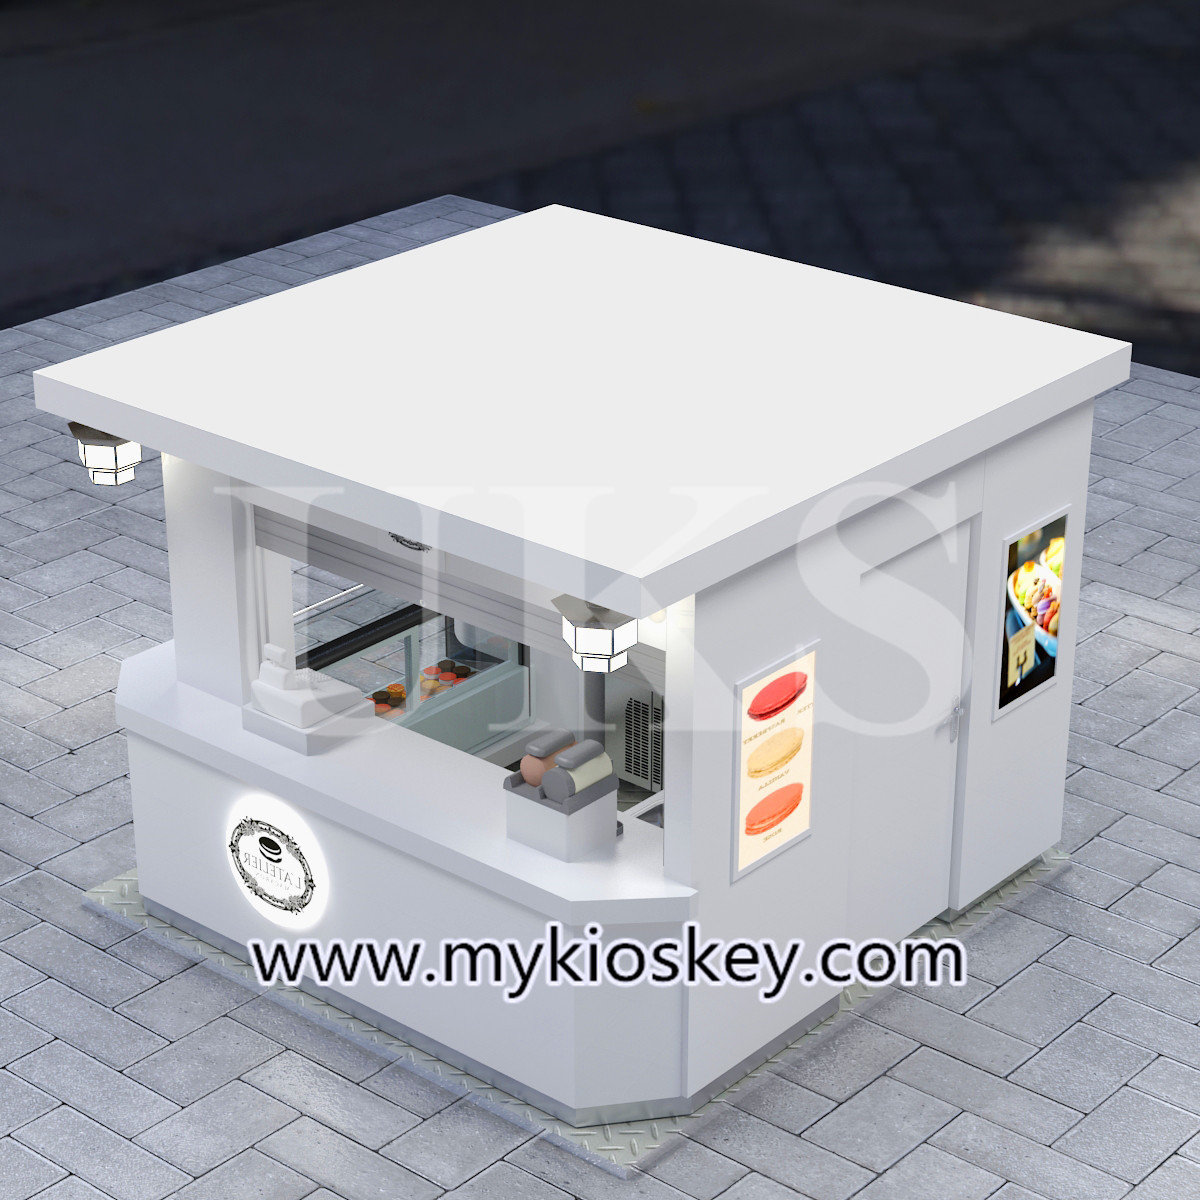 macaron outdoor food kiosk is a small street retail shop